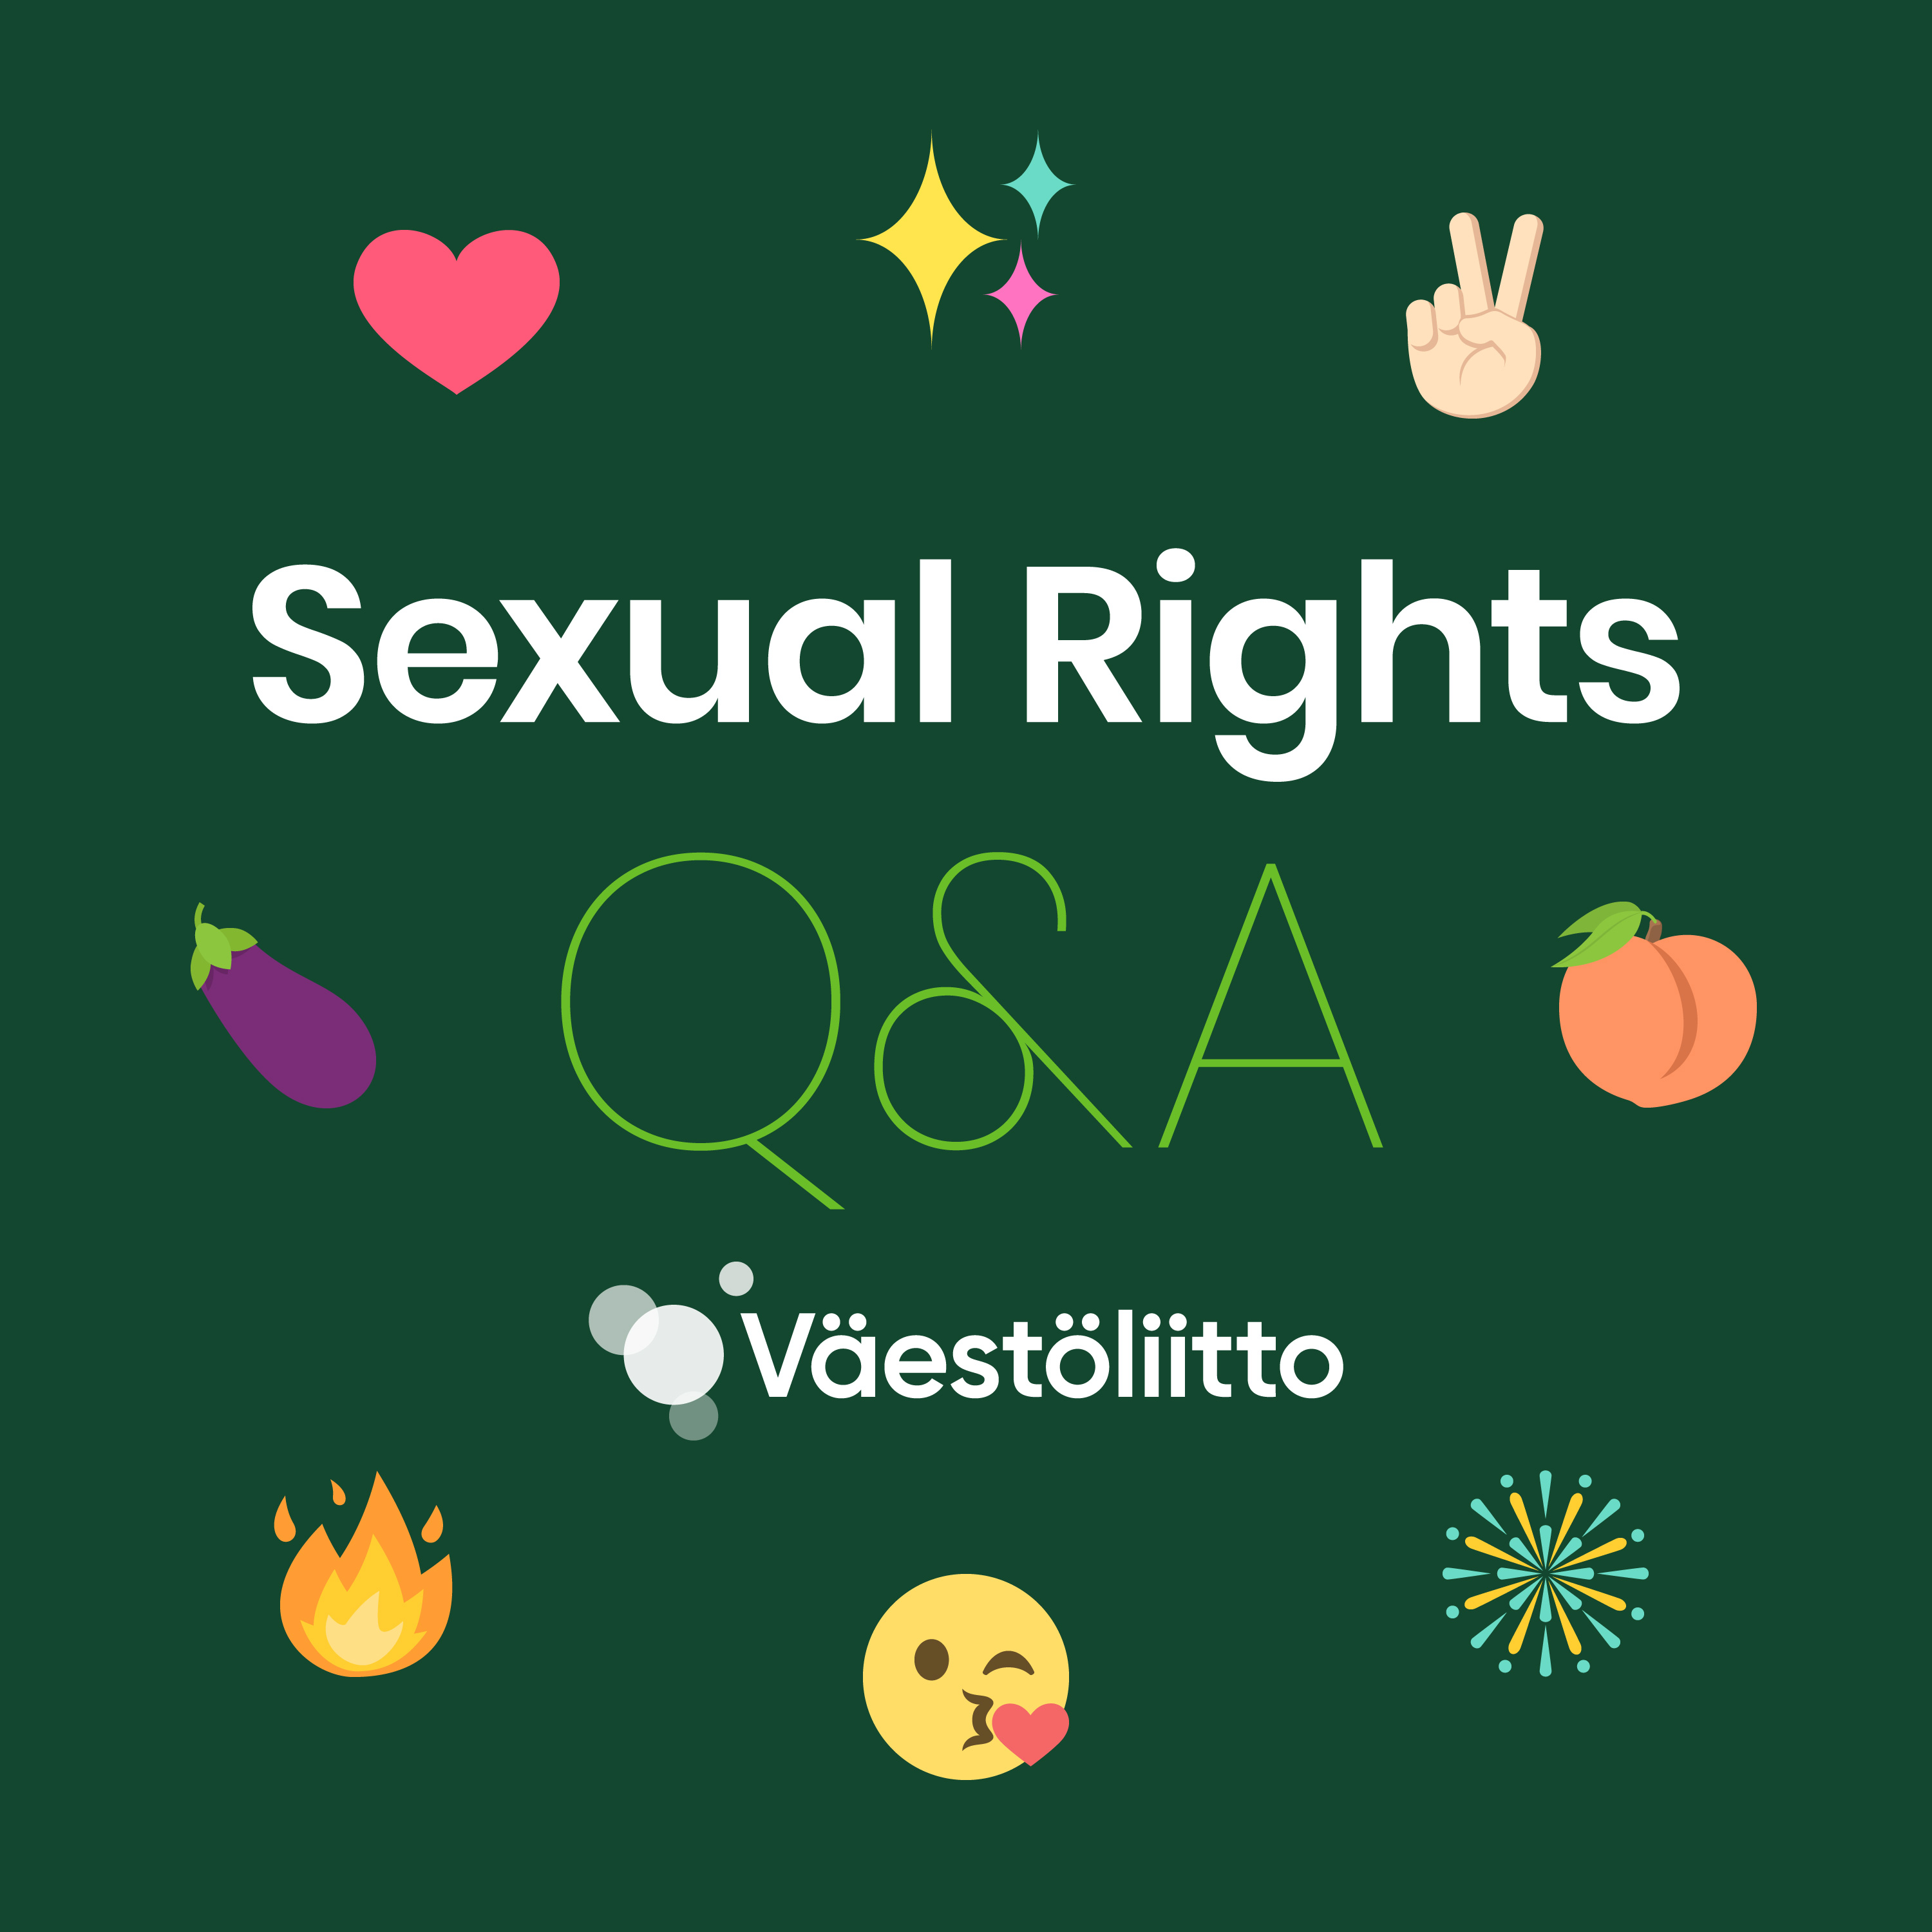 Sexual Rights Q&A